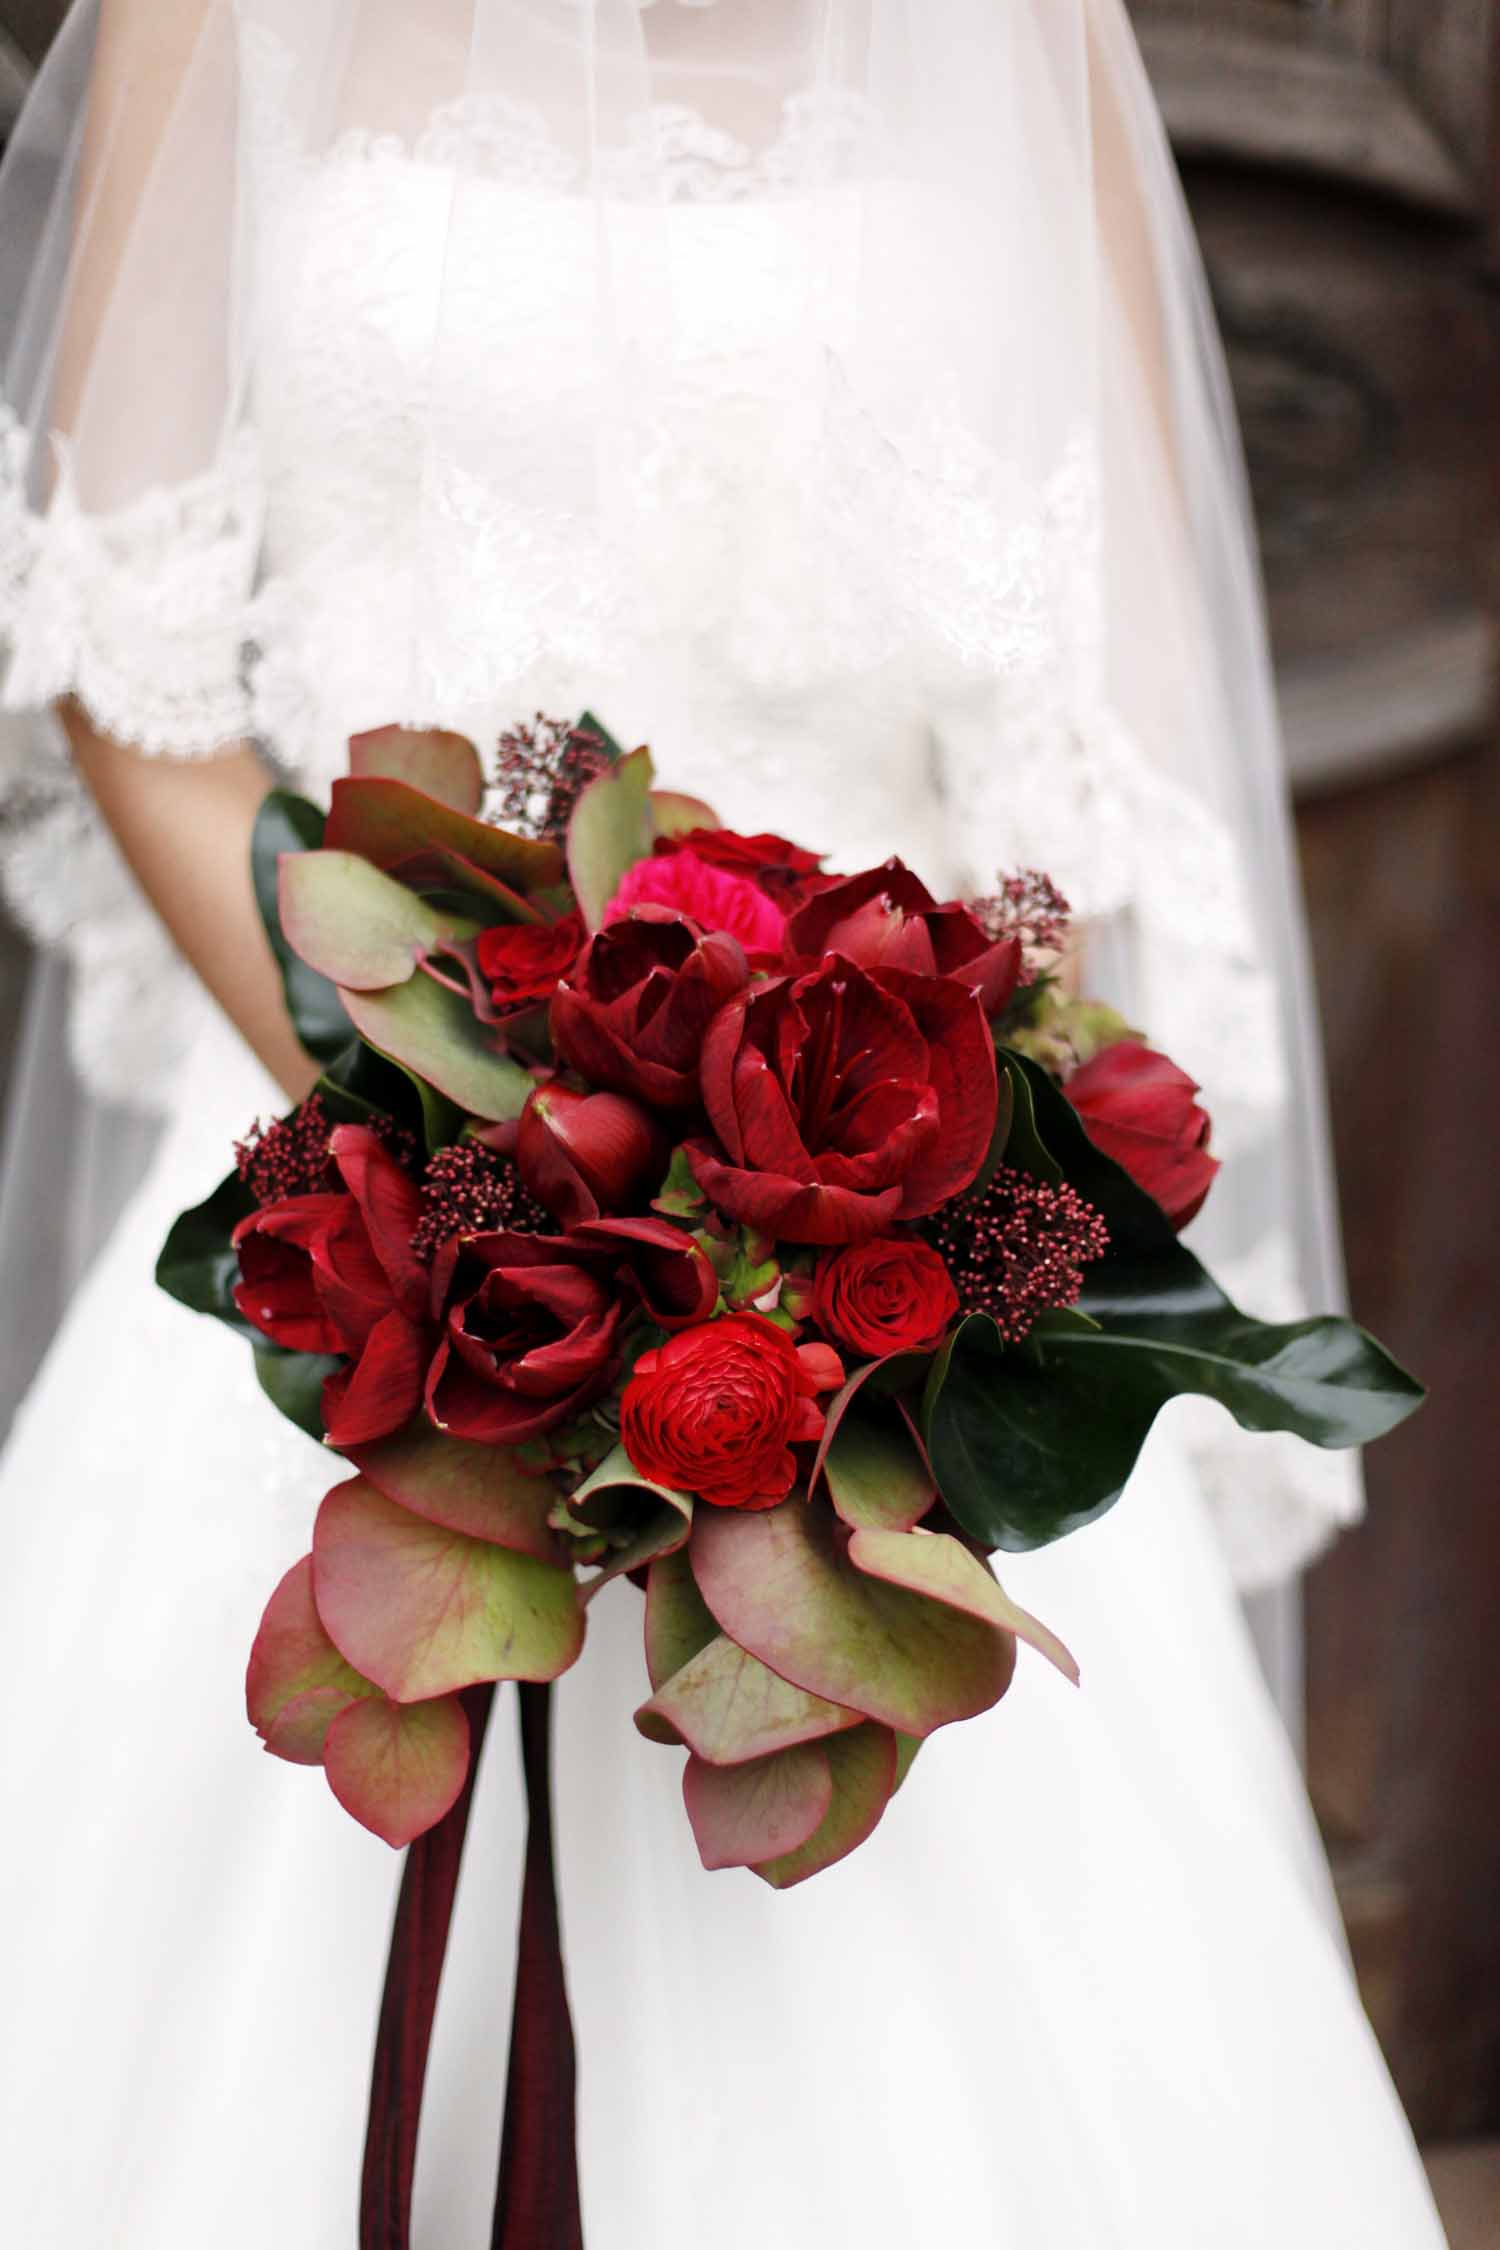 red amaryllis wedding bouquet for Wedding Style Shoot in Kloster Eberbach, Germany, designed by Flora Nova Design, Seattle